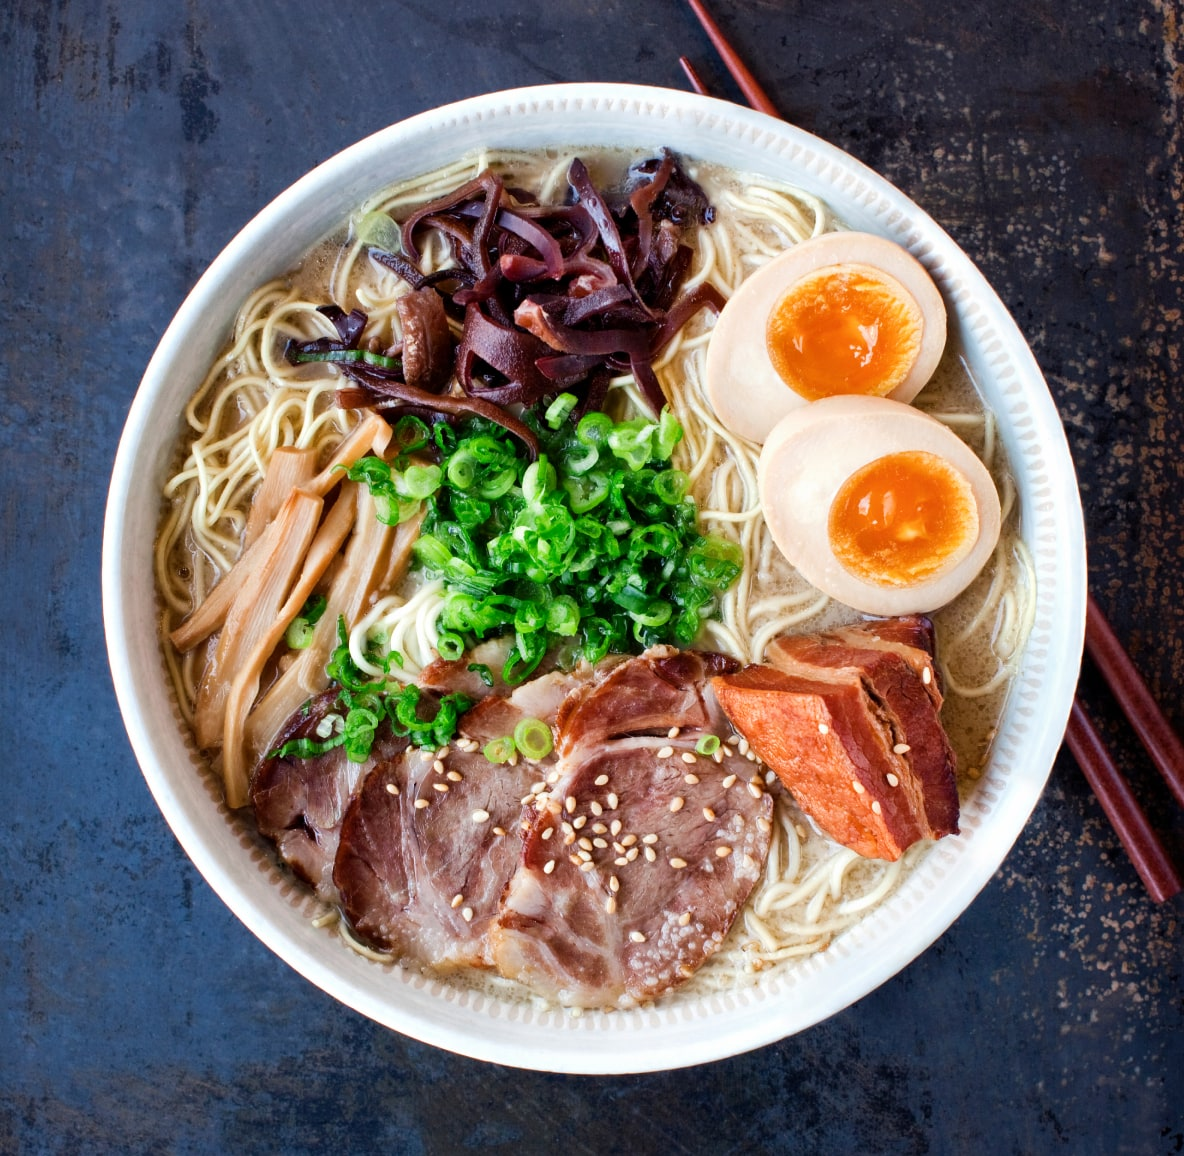 A bowl of ramen topped with egg, pork, green onion and bamboo shoots